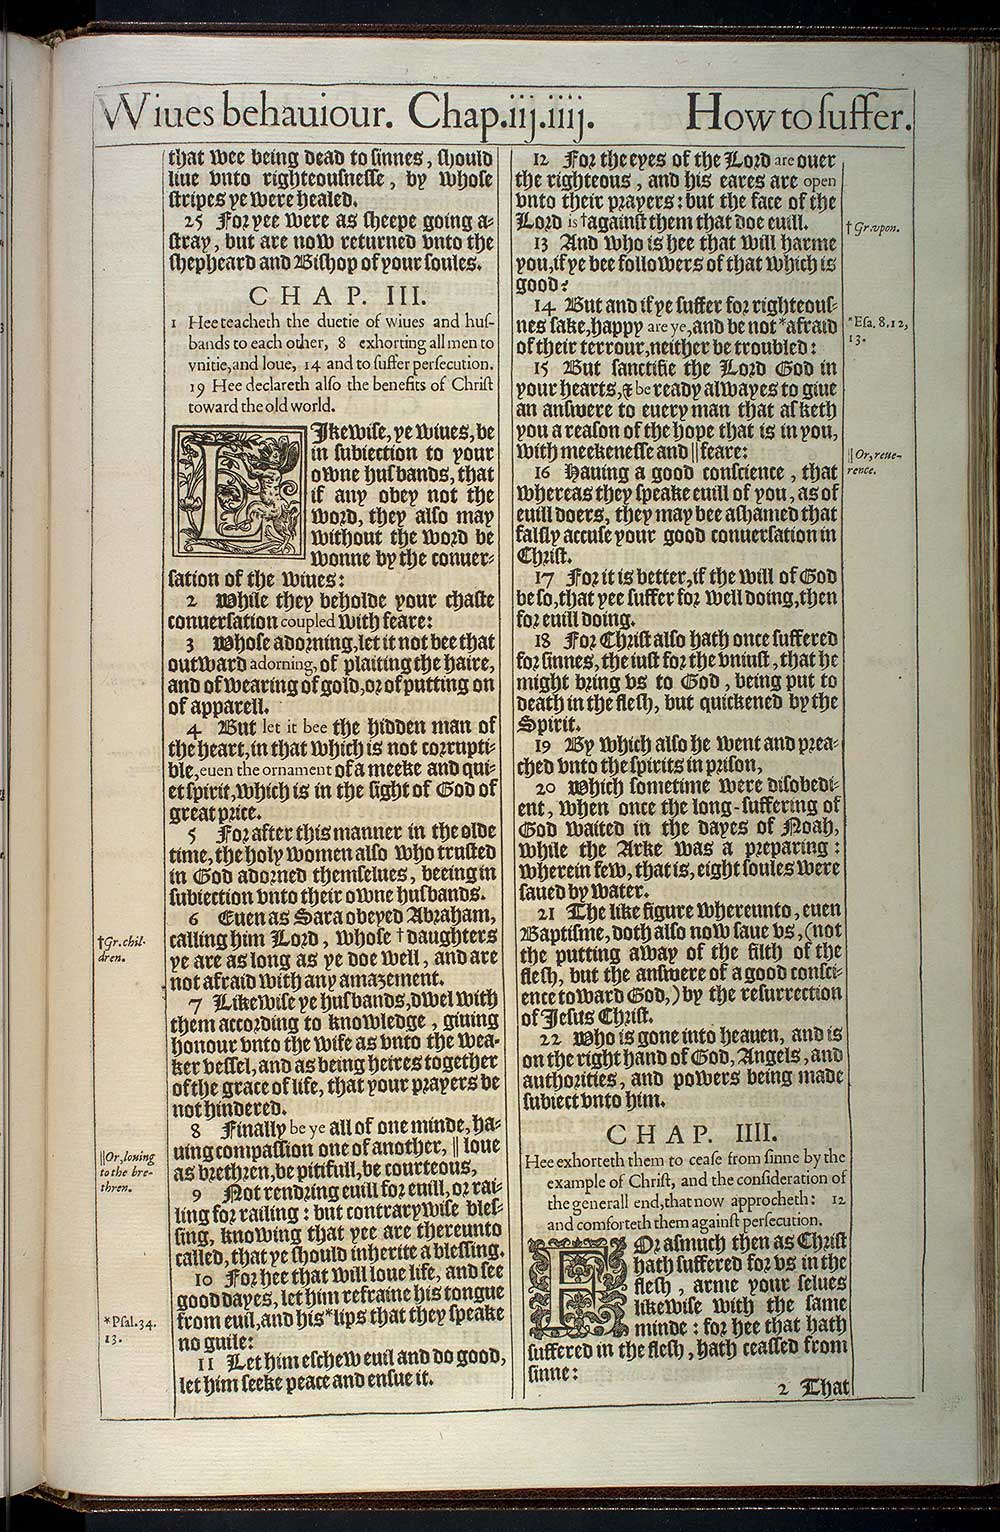 1 Peter Chapter 3 Original 1611 Bible Scan